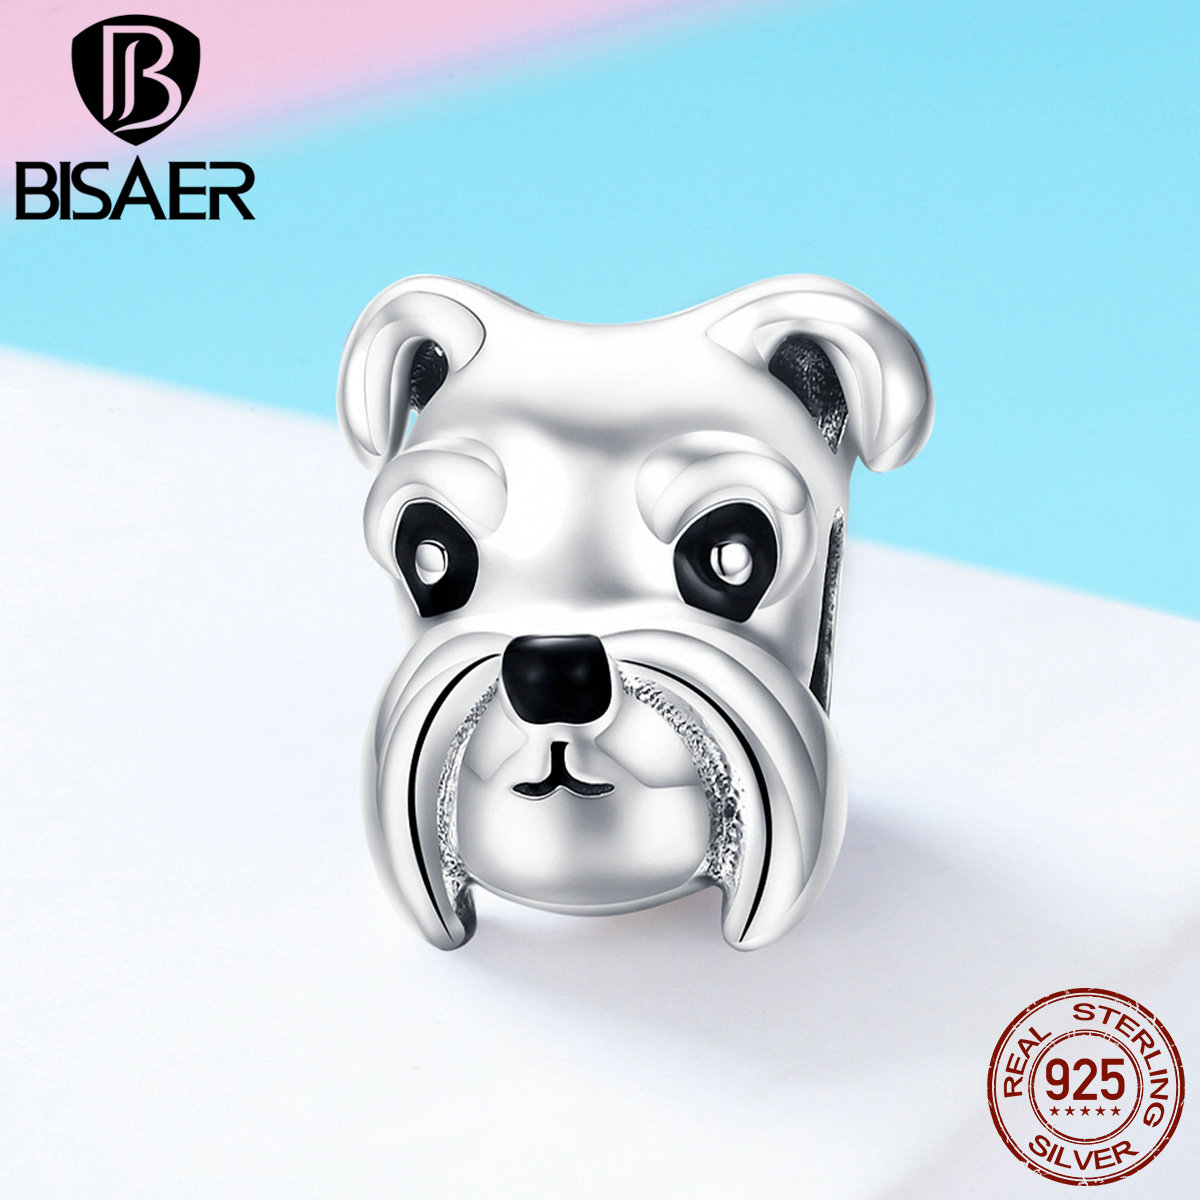 BISAER Dog Charms 925 Sterling Silver Schnauzer Charm Animal Dog Beads fit Bracelets Necklaces Silver Jewelry Making ECC835